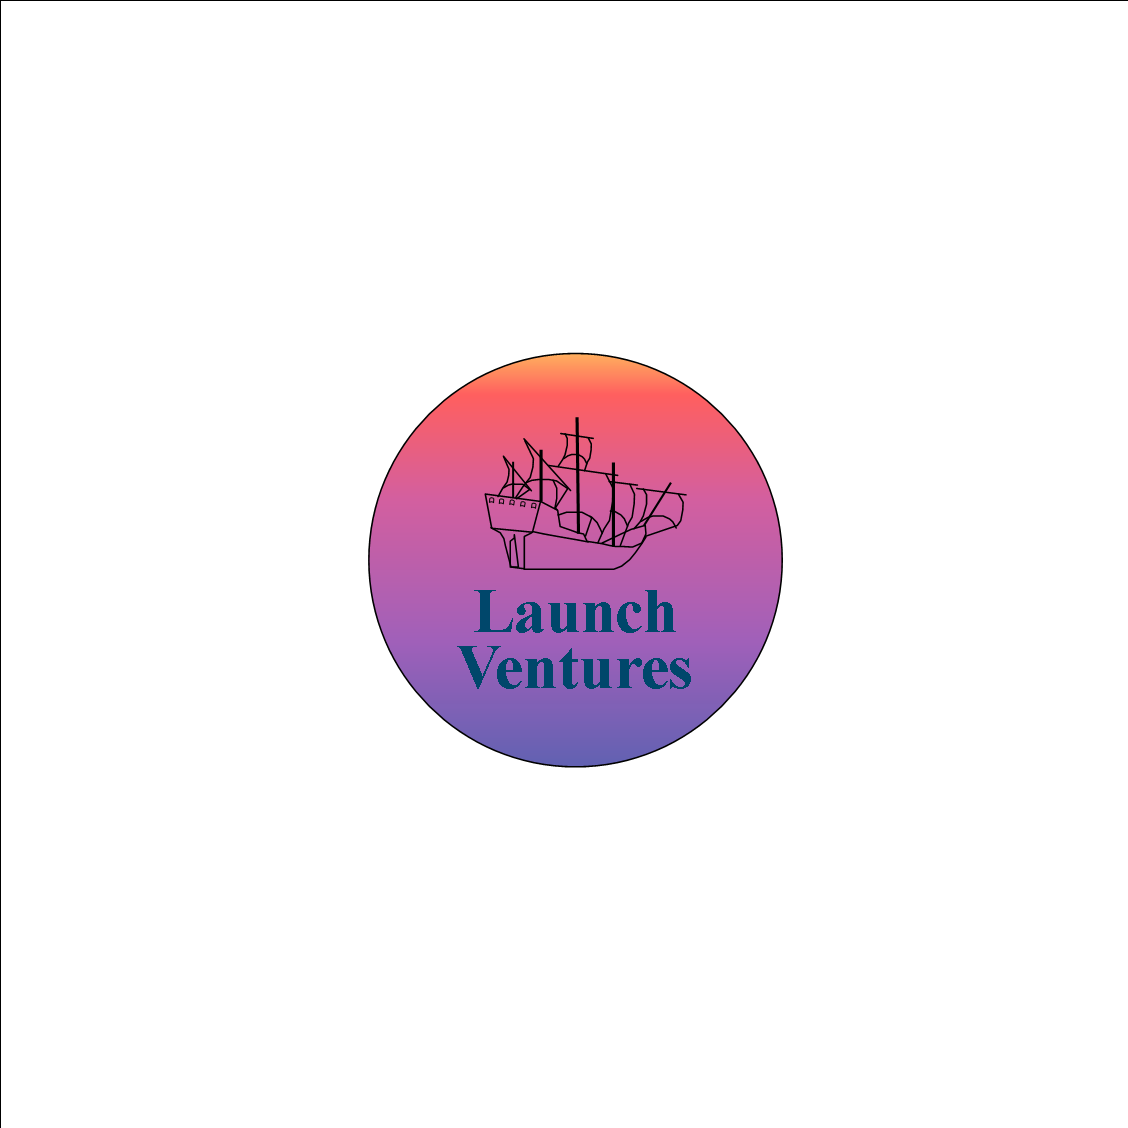 Logo Design by nk - Entry No. 195 in the Logo Design Contest Launch Ventures.